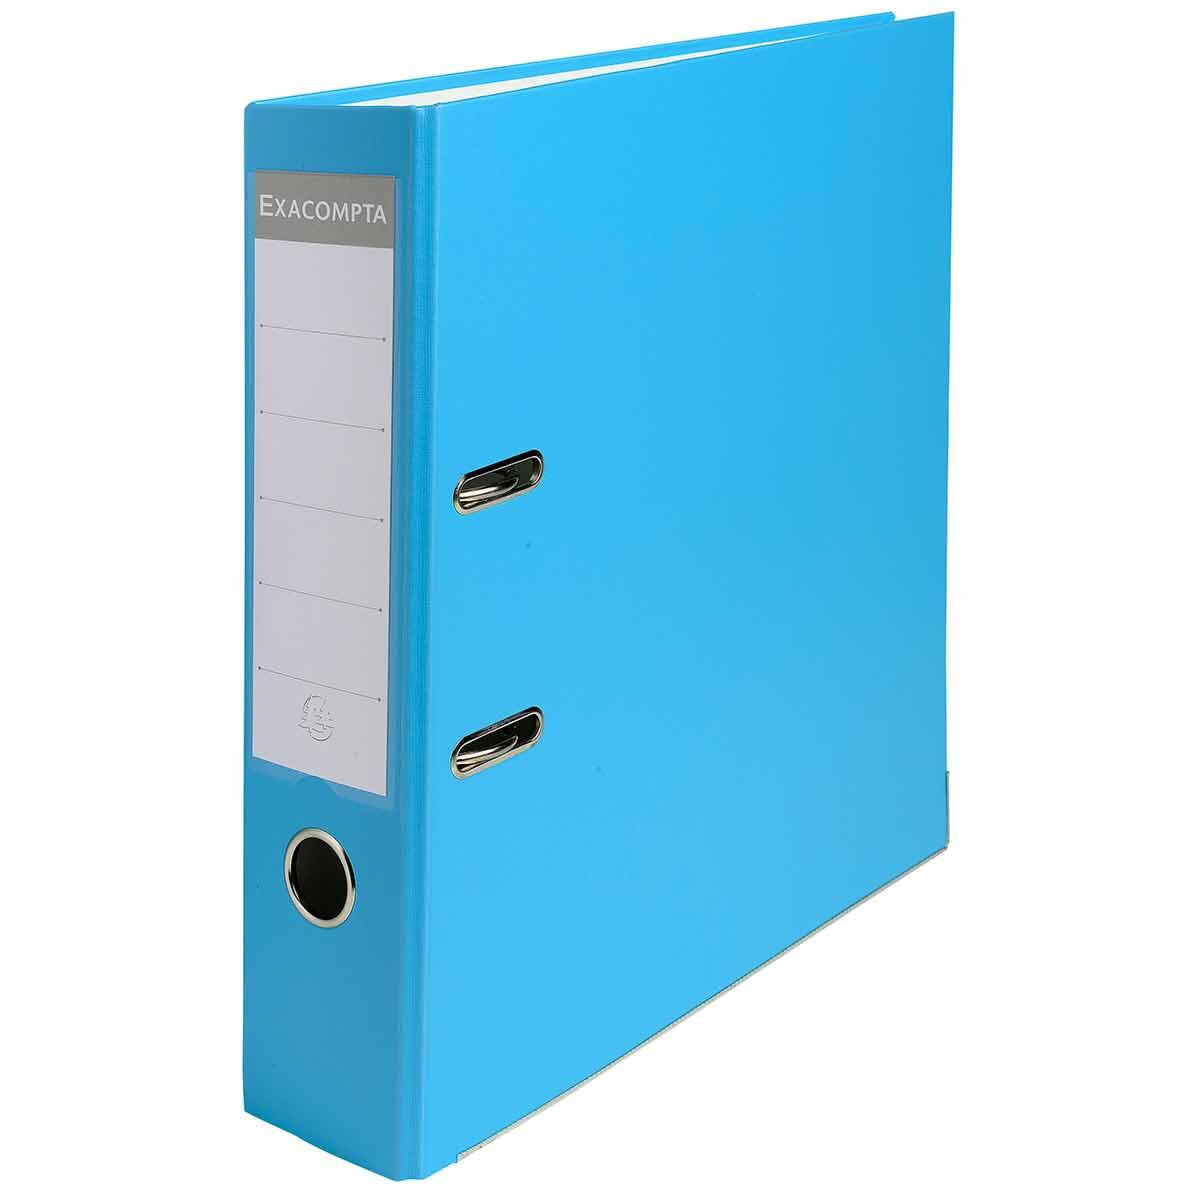 Exacompta Lever Arch File A4 80mm Pack of 20 Light Blue